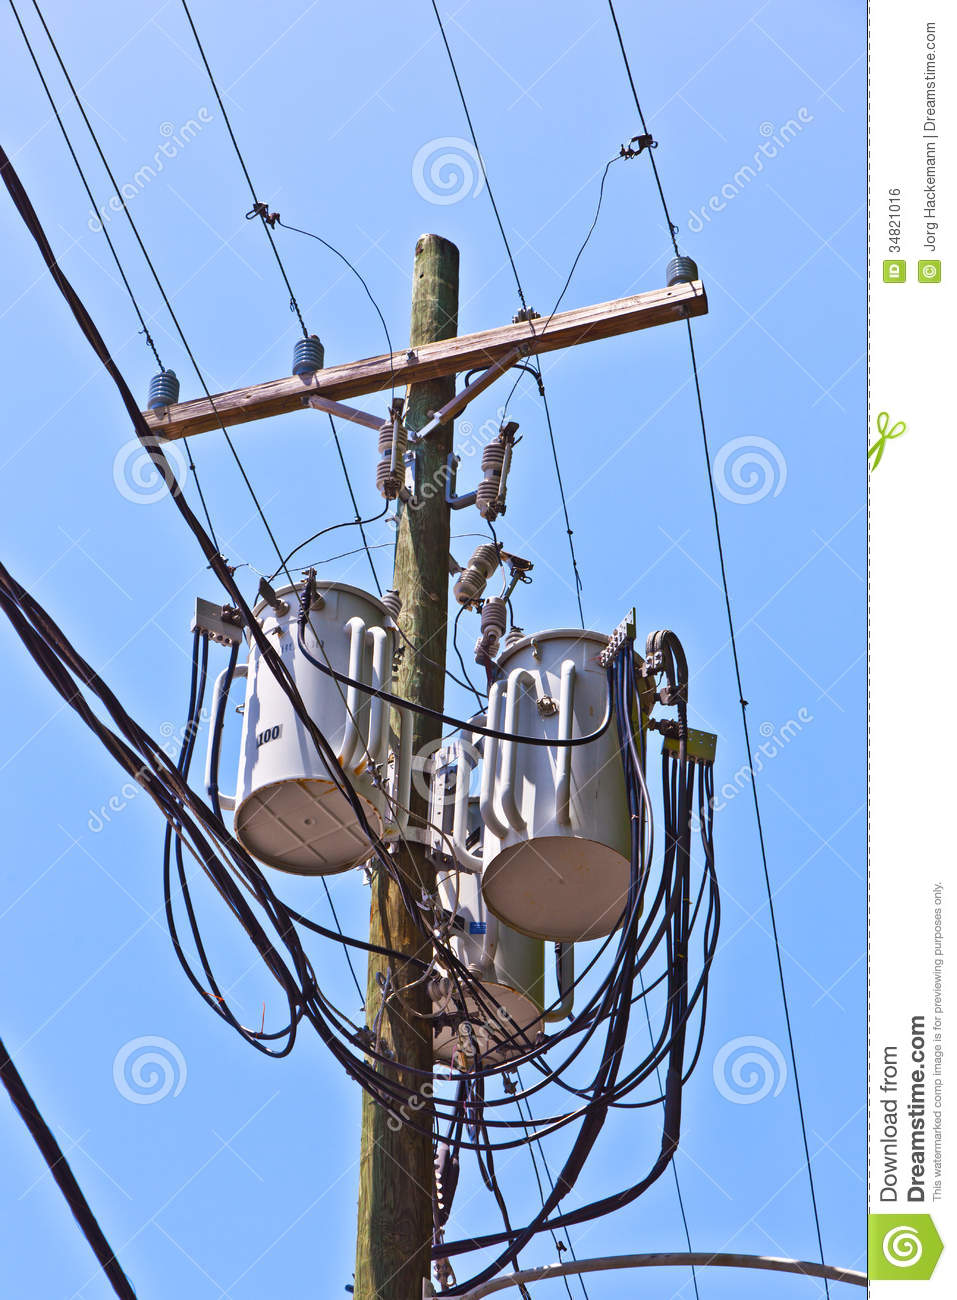 Utility Pole Under Clear Blue Sky Royalty Free Stock Image ...